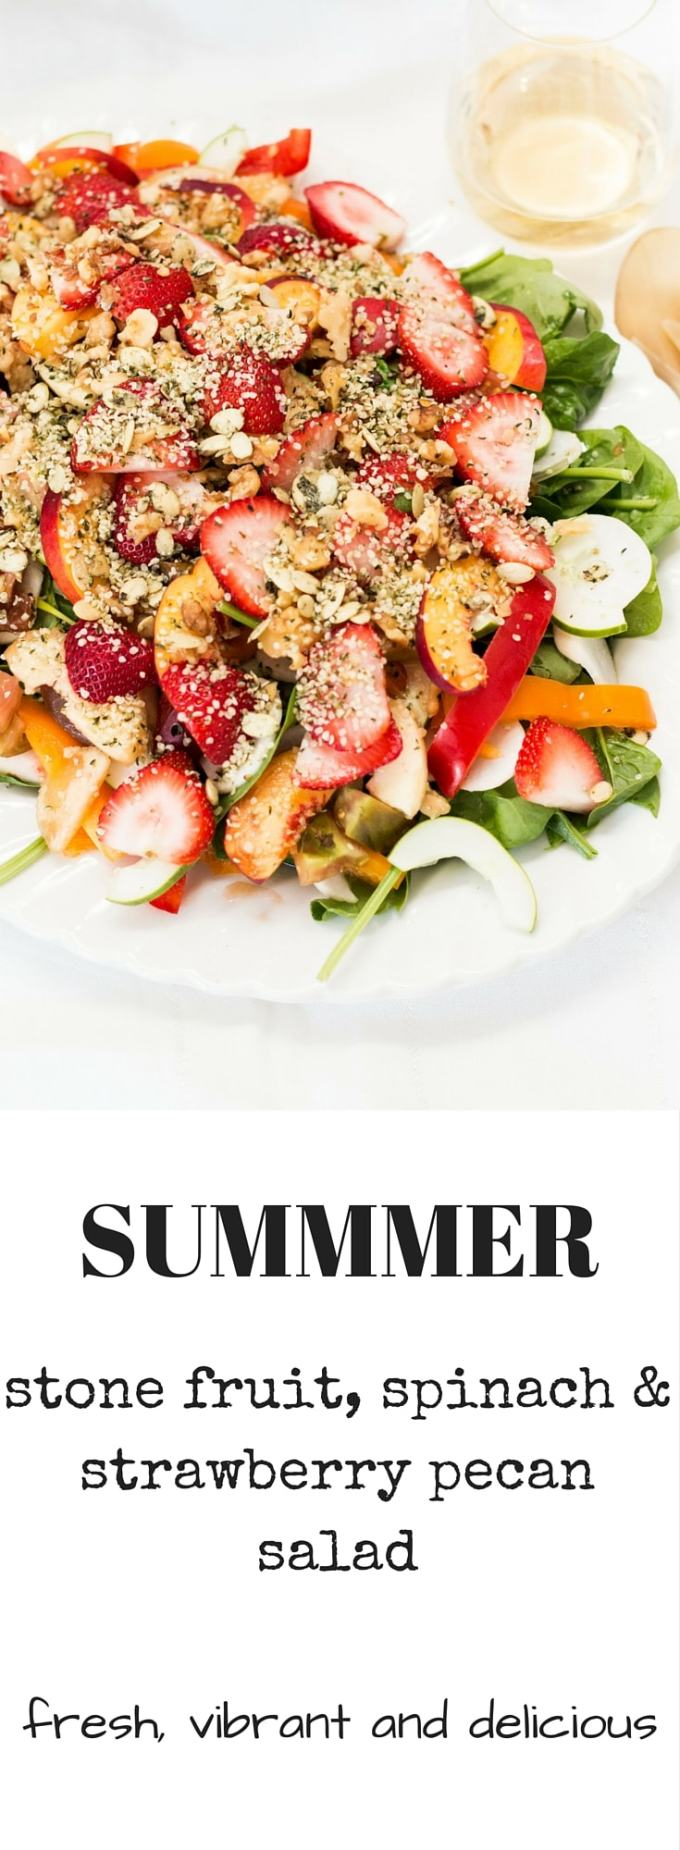 Fresh and vibrant, this Spinach Strawberry Pecan Salad is the perfect accompaniment to a lazy summer BBQ. Pile all the ingredients onto a chopping board, drizzle on the dressing and enjoy with a nice glass of rosé. #summersalad #saladrecipe #fruitysalad #summersaladrecipe